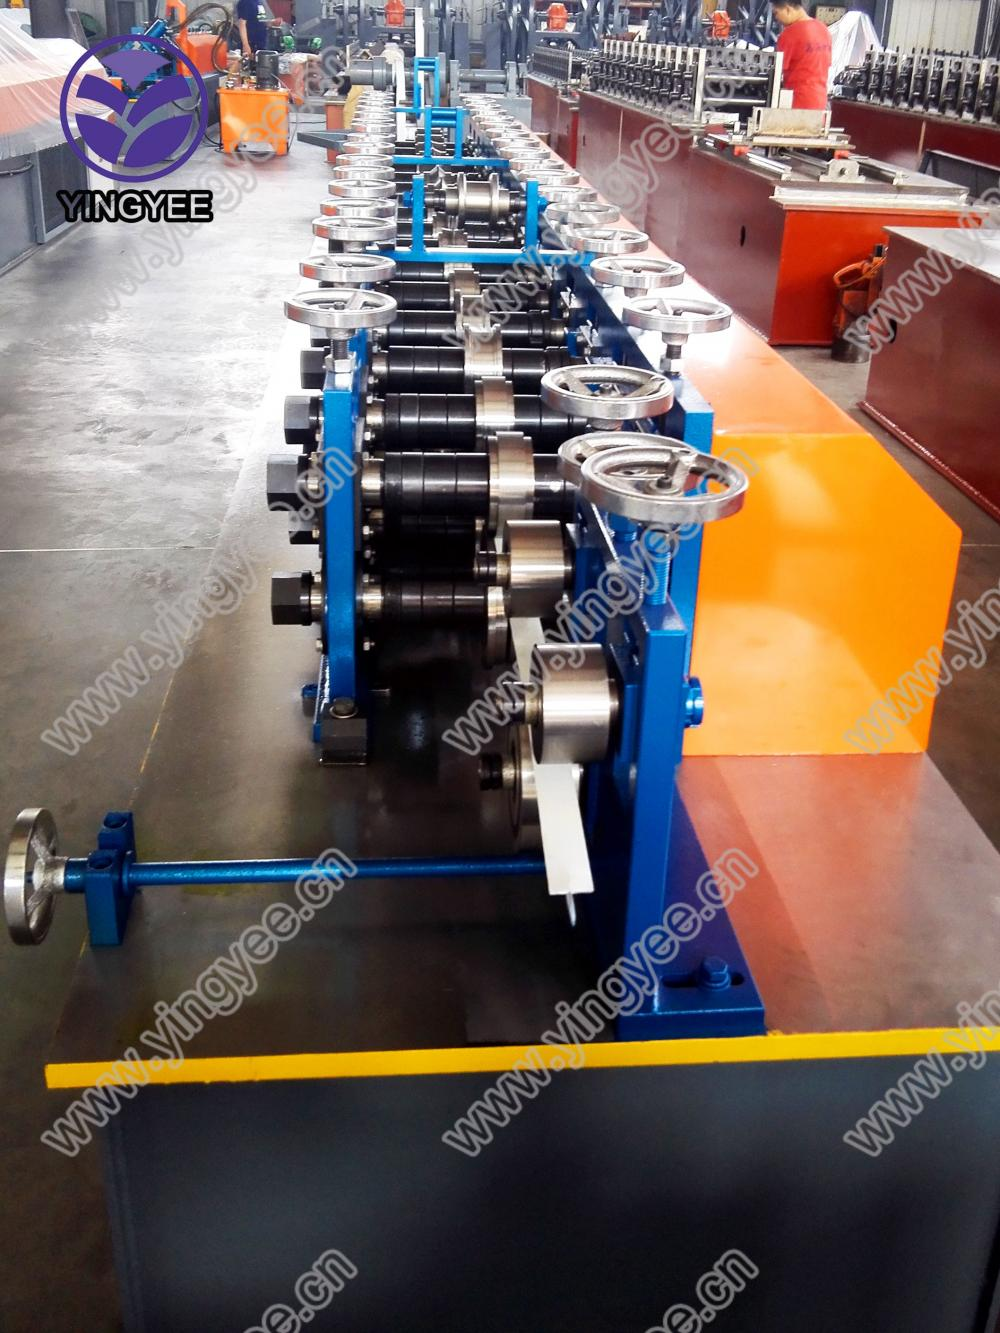 T Ceiling Bar Machine From Yingyee003